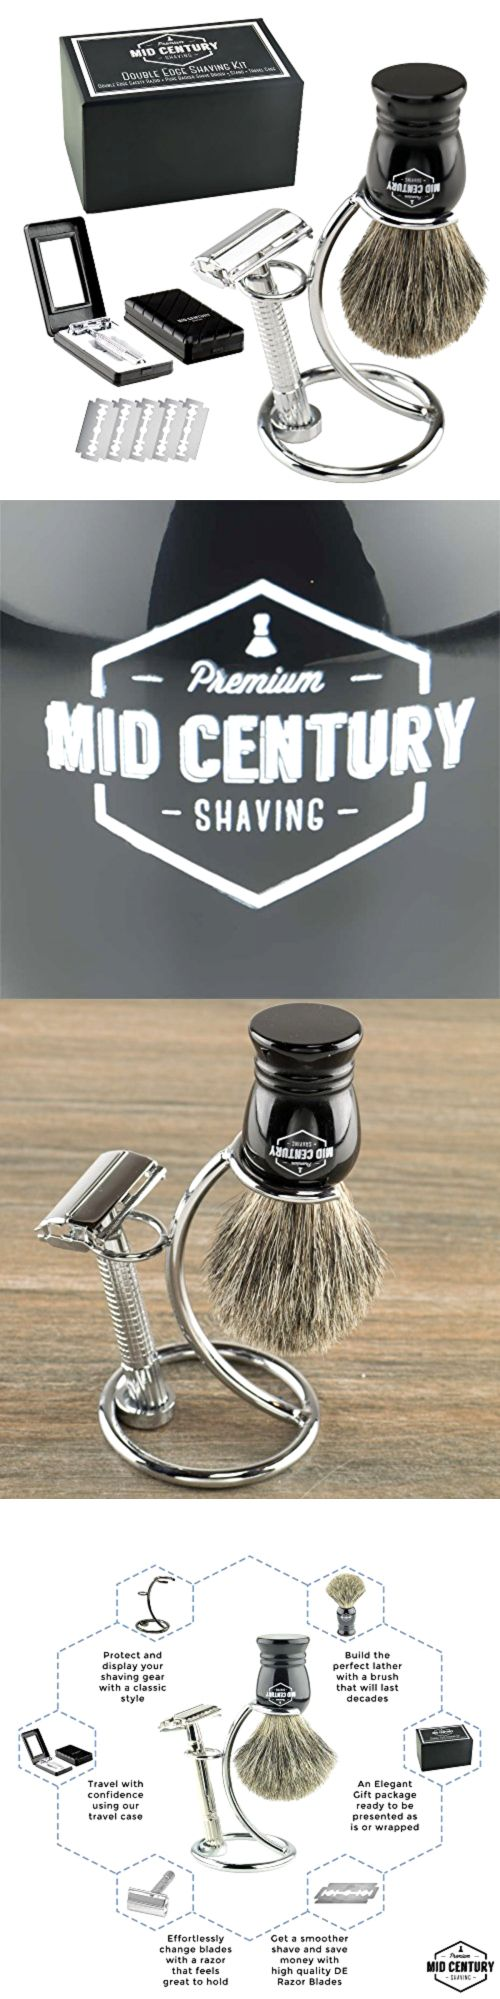 Shaving and Grooming Kits and Sets: Safety Razor Shaving Kit Double Edge Razor Pure Badger Brush Complete Set, New -> BUY IT NOW ONLY: $55.18 on eBay!